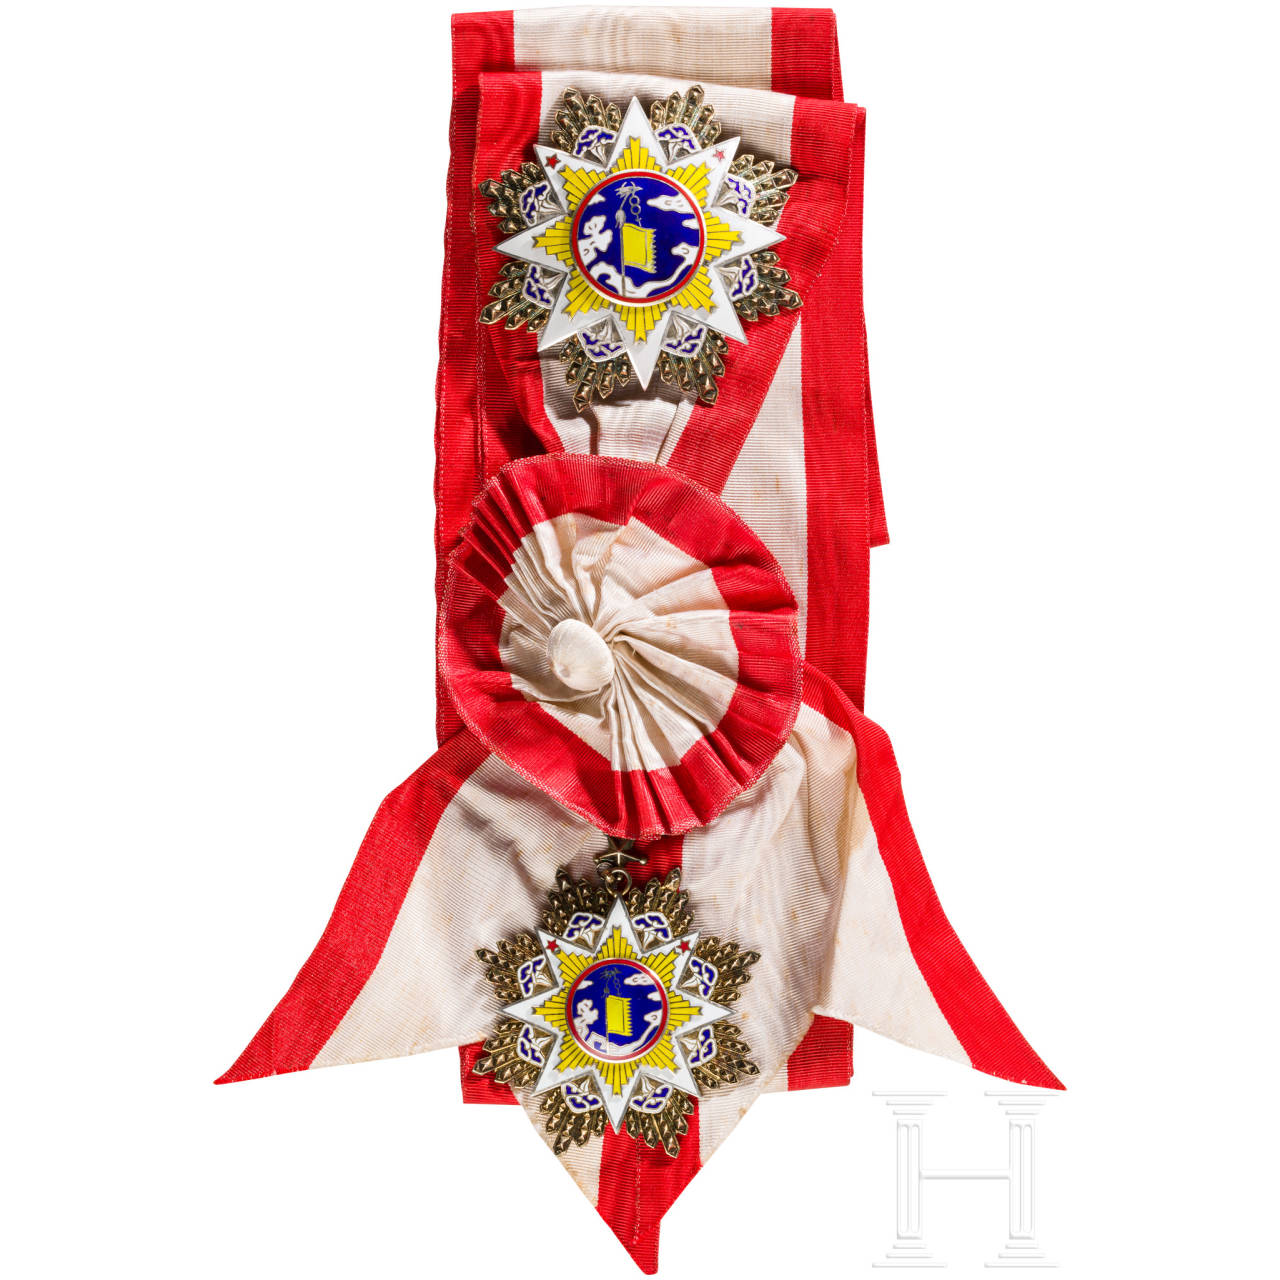 A Chinese Order of the Cloud and Banner, 2nd Class jewel, complete with breast star and original ribbon, 1st Republic